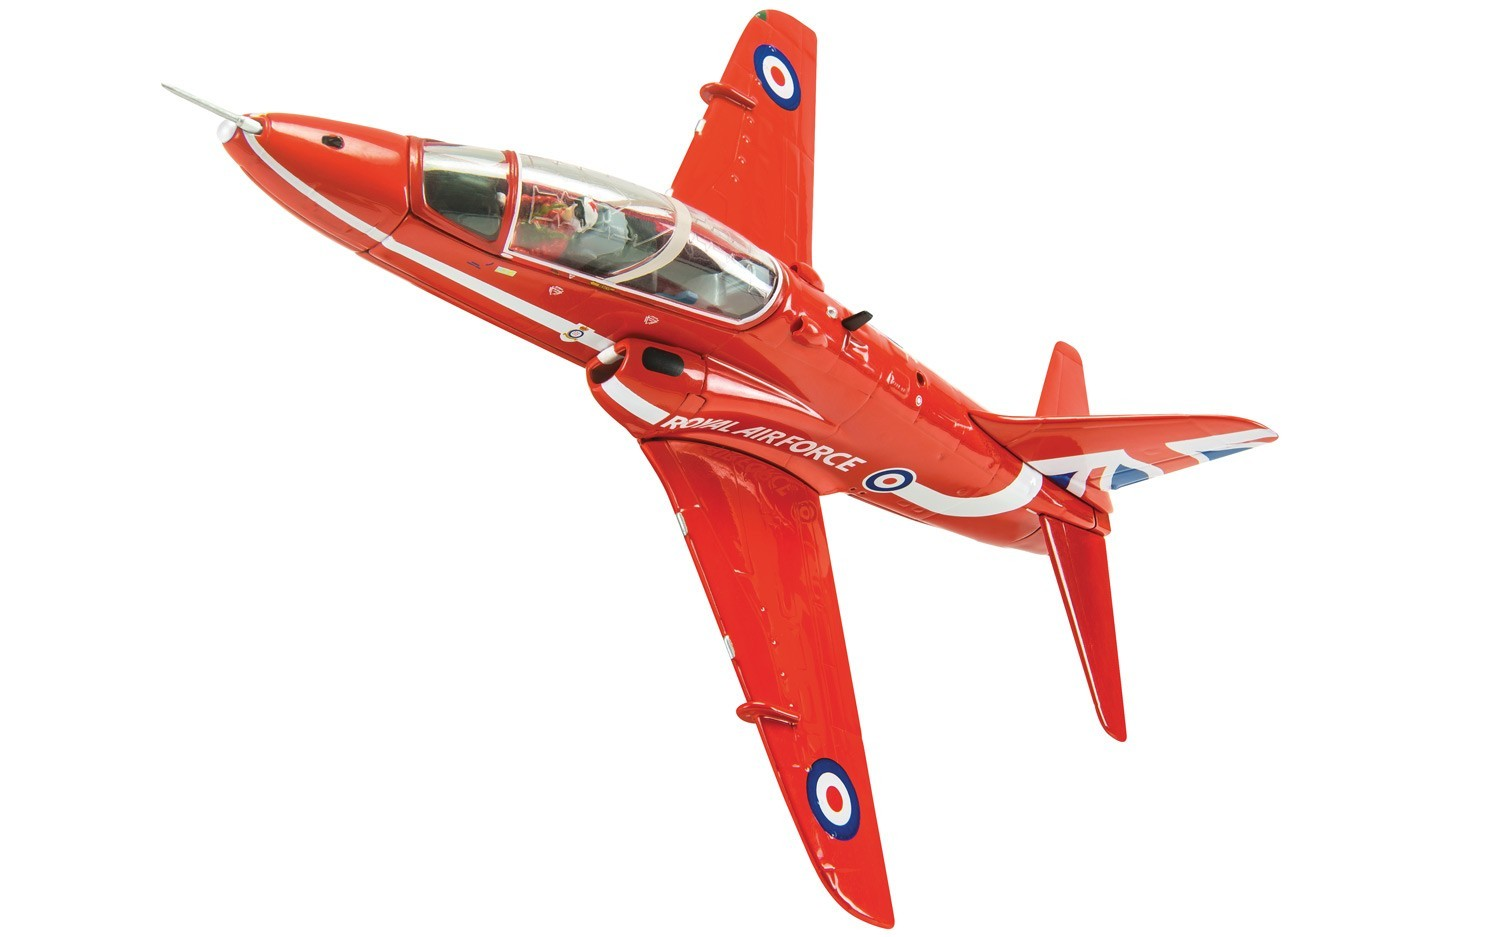 Corgi 60th 1:72 Red Arrows Diecast Model image